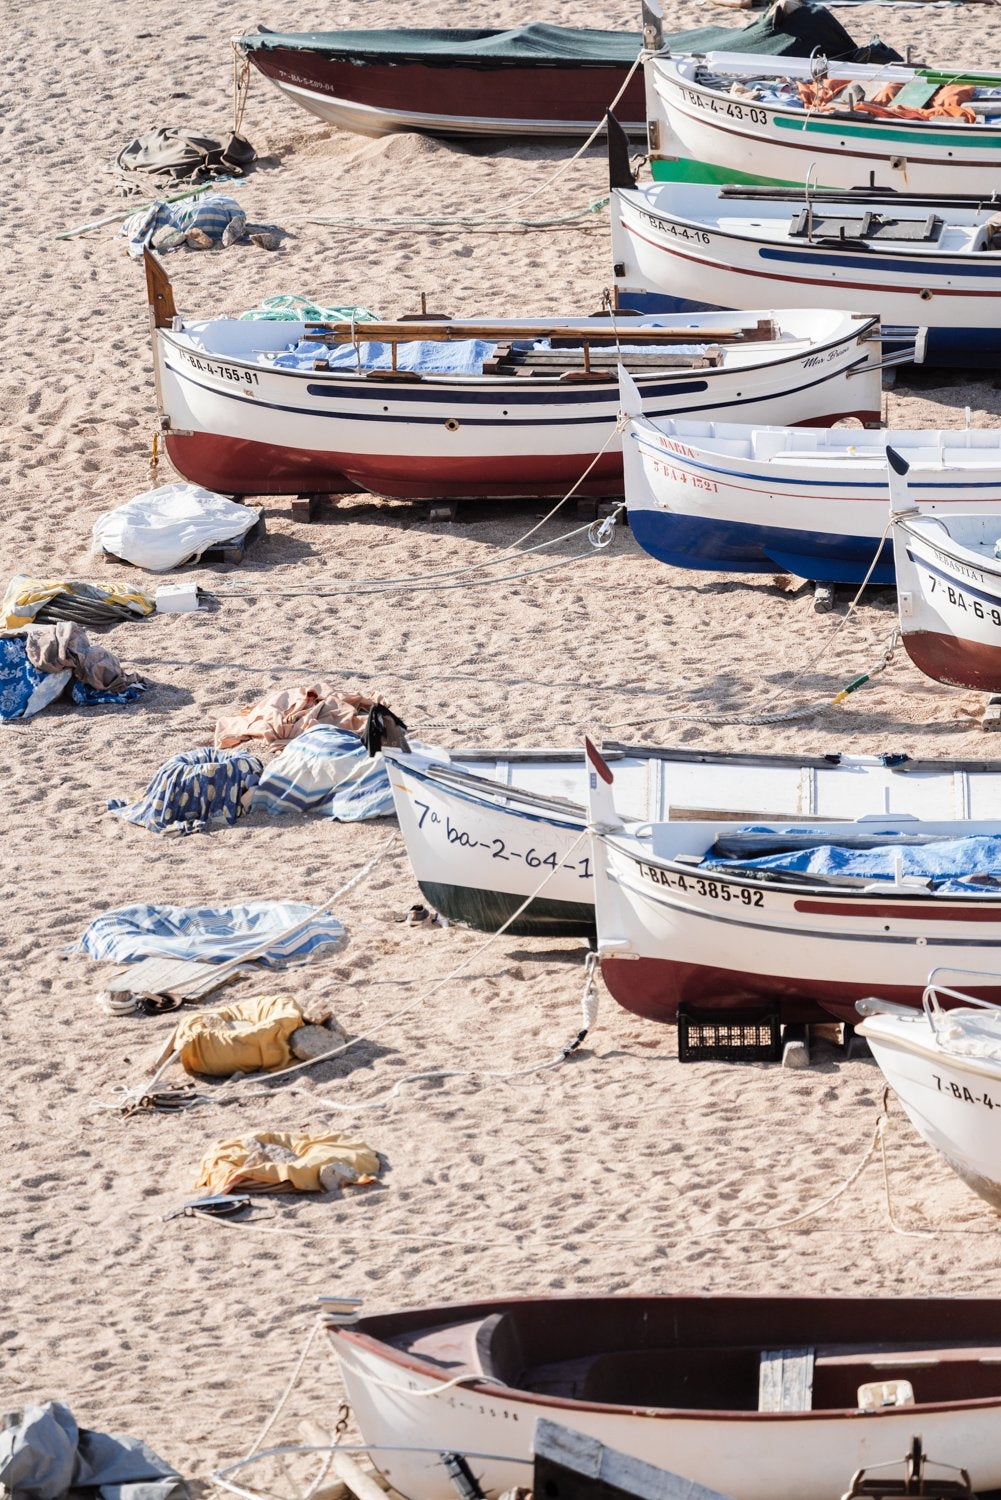 Wooden boats beached on the sand